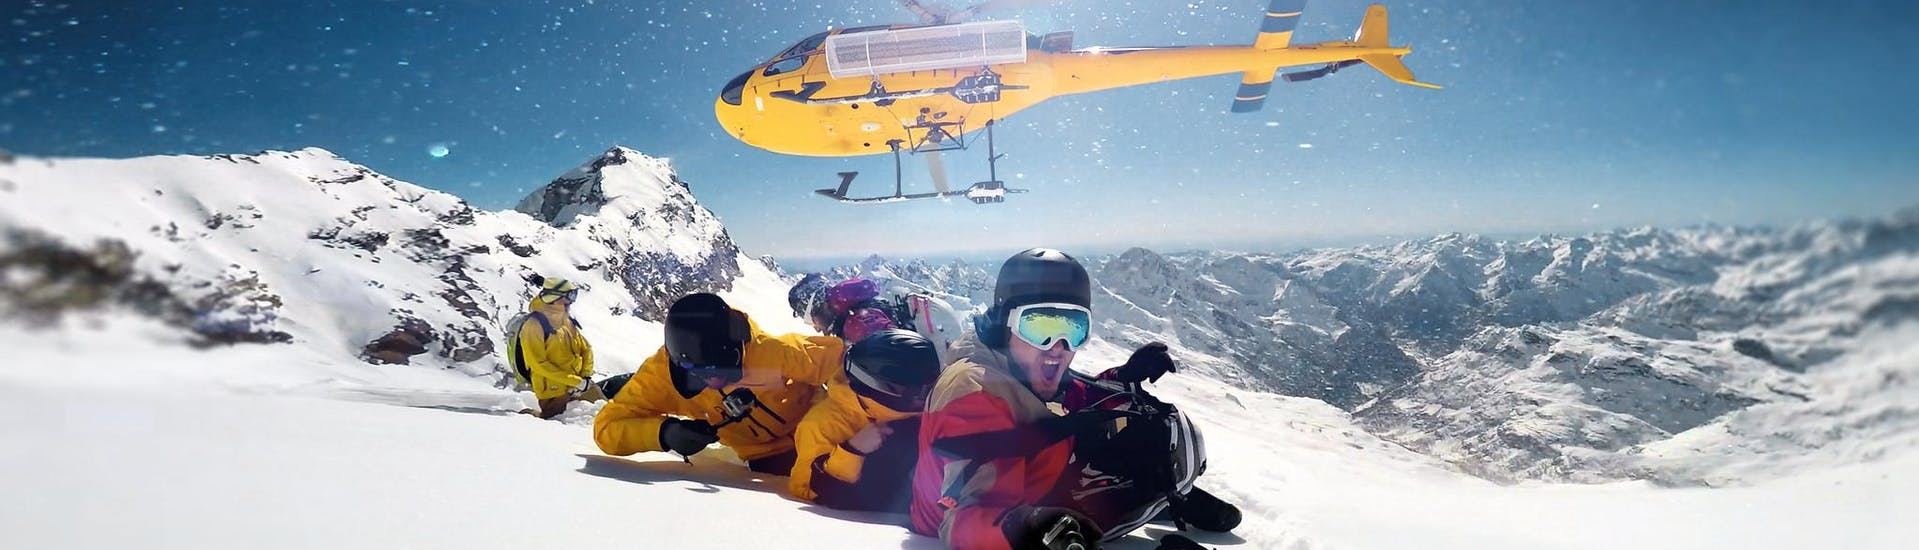 A group of skiers who have booked a Heli Skiing Private - Mehlsack or Schneetäli with Alpinist have just been dropped off on top of a mountain by a bright yellow helicopter.